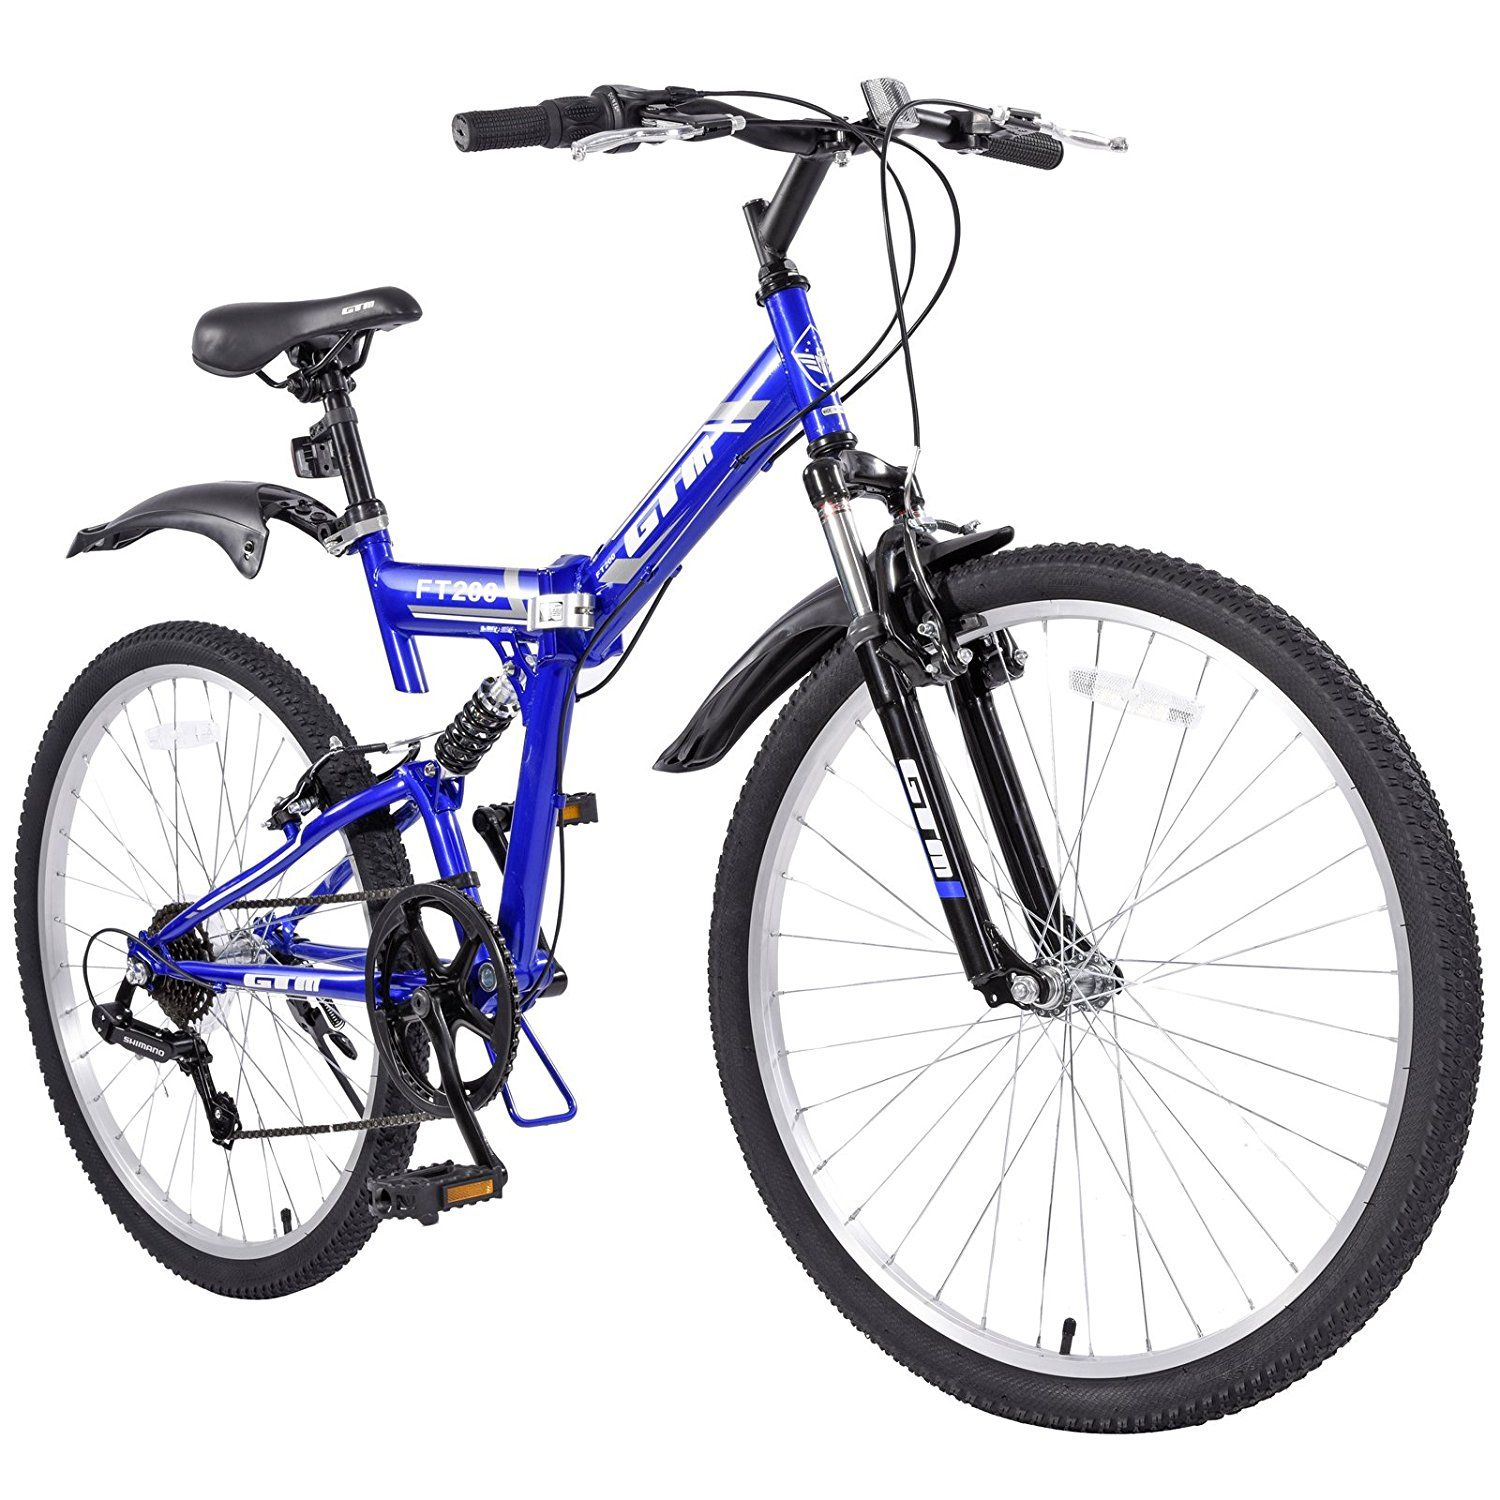 Check Out The Orkan Folding Mountain Bike 26 7 Speed With Hybrid